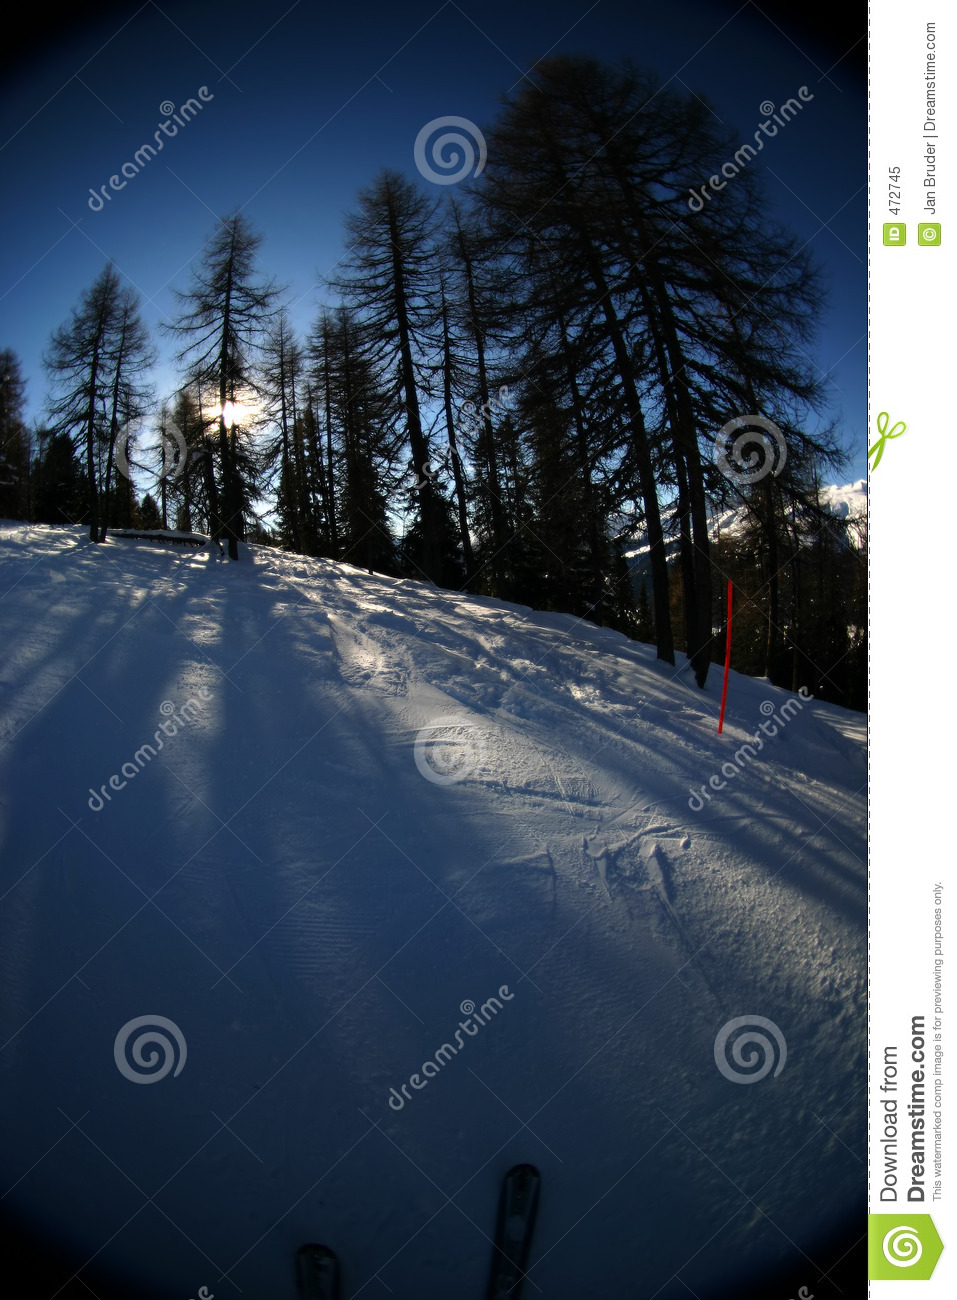 Download Skiing action 4 stock image. Image of downhill, skiing - 472745